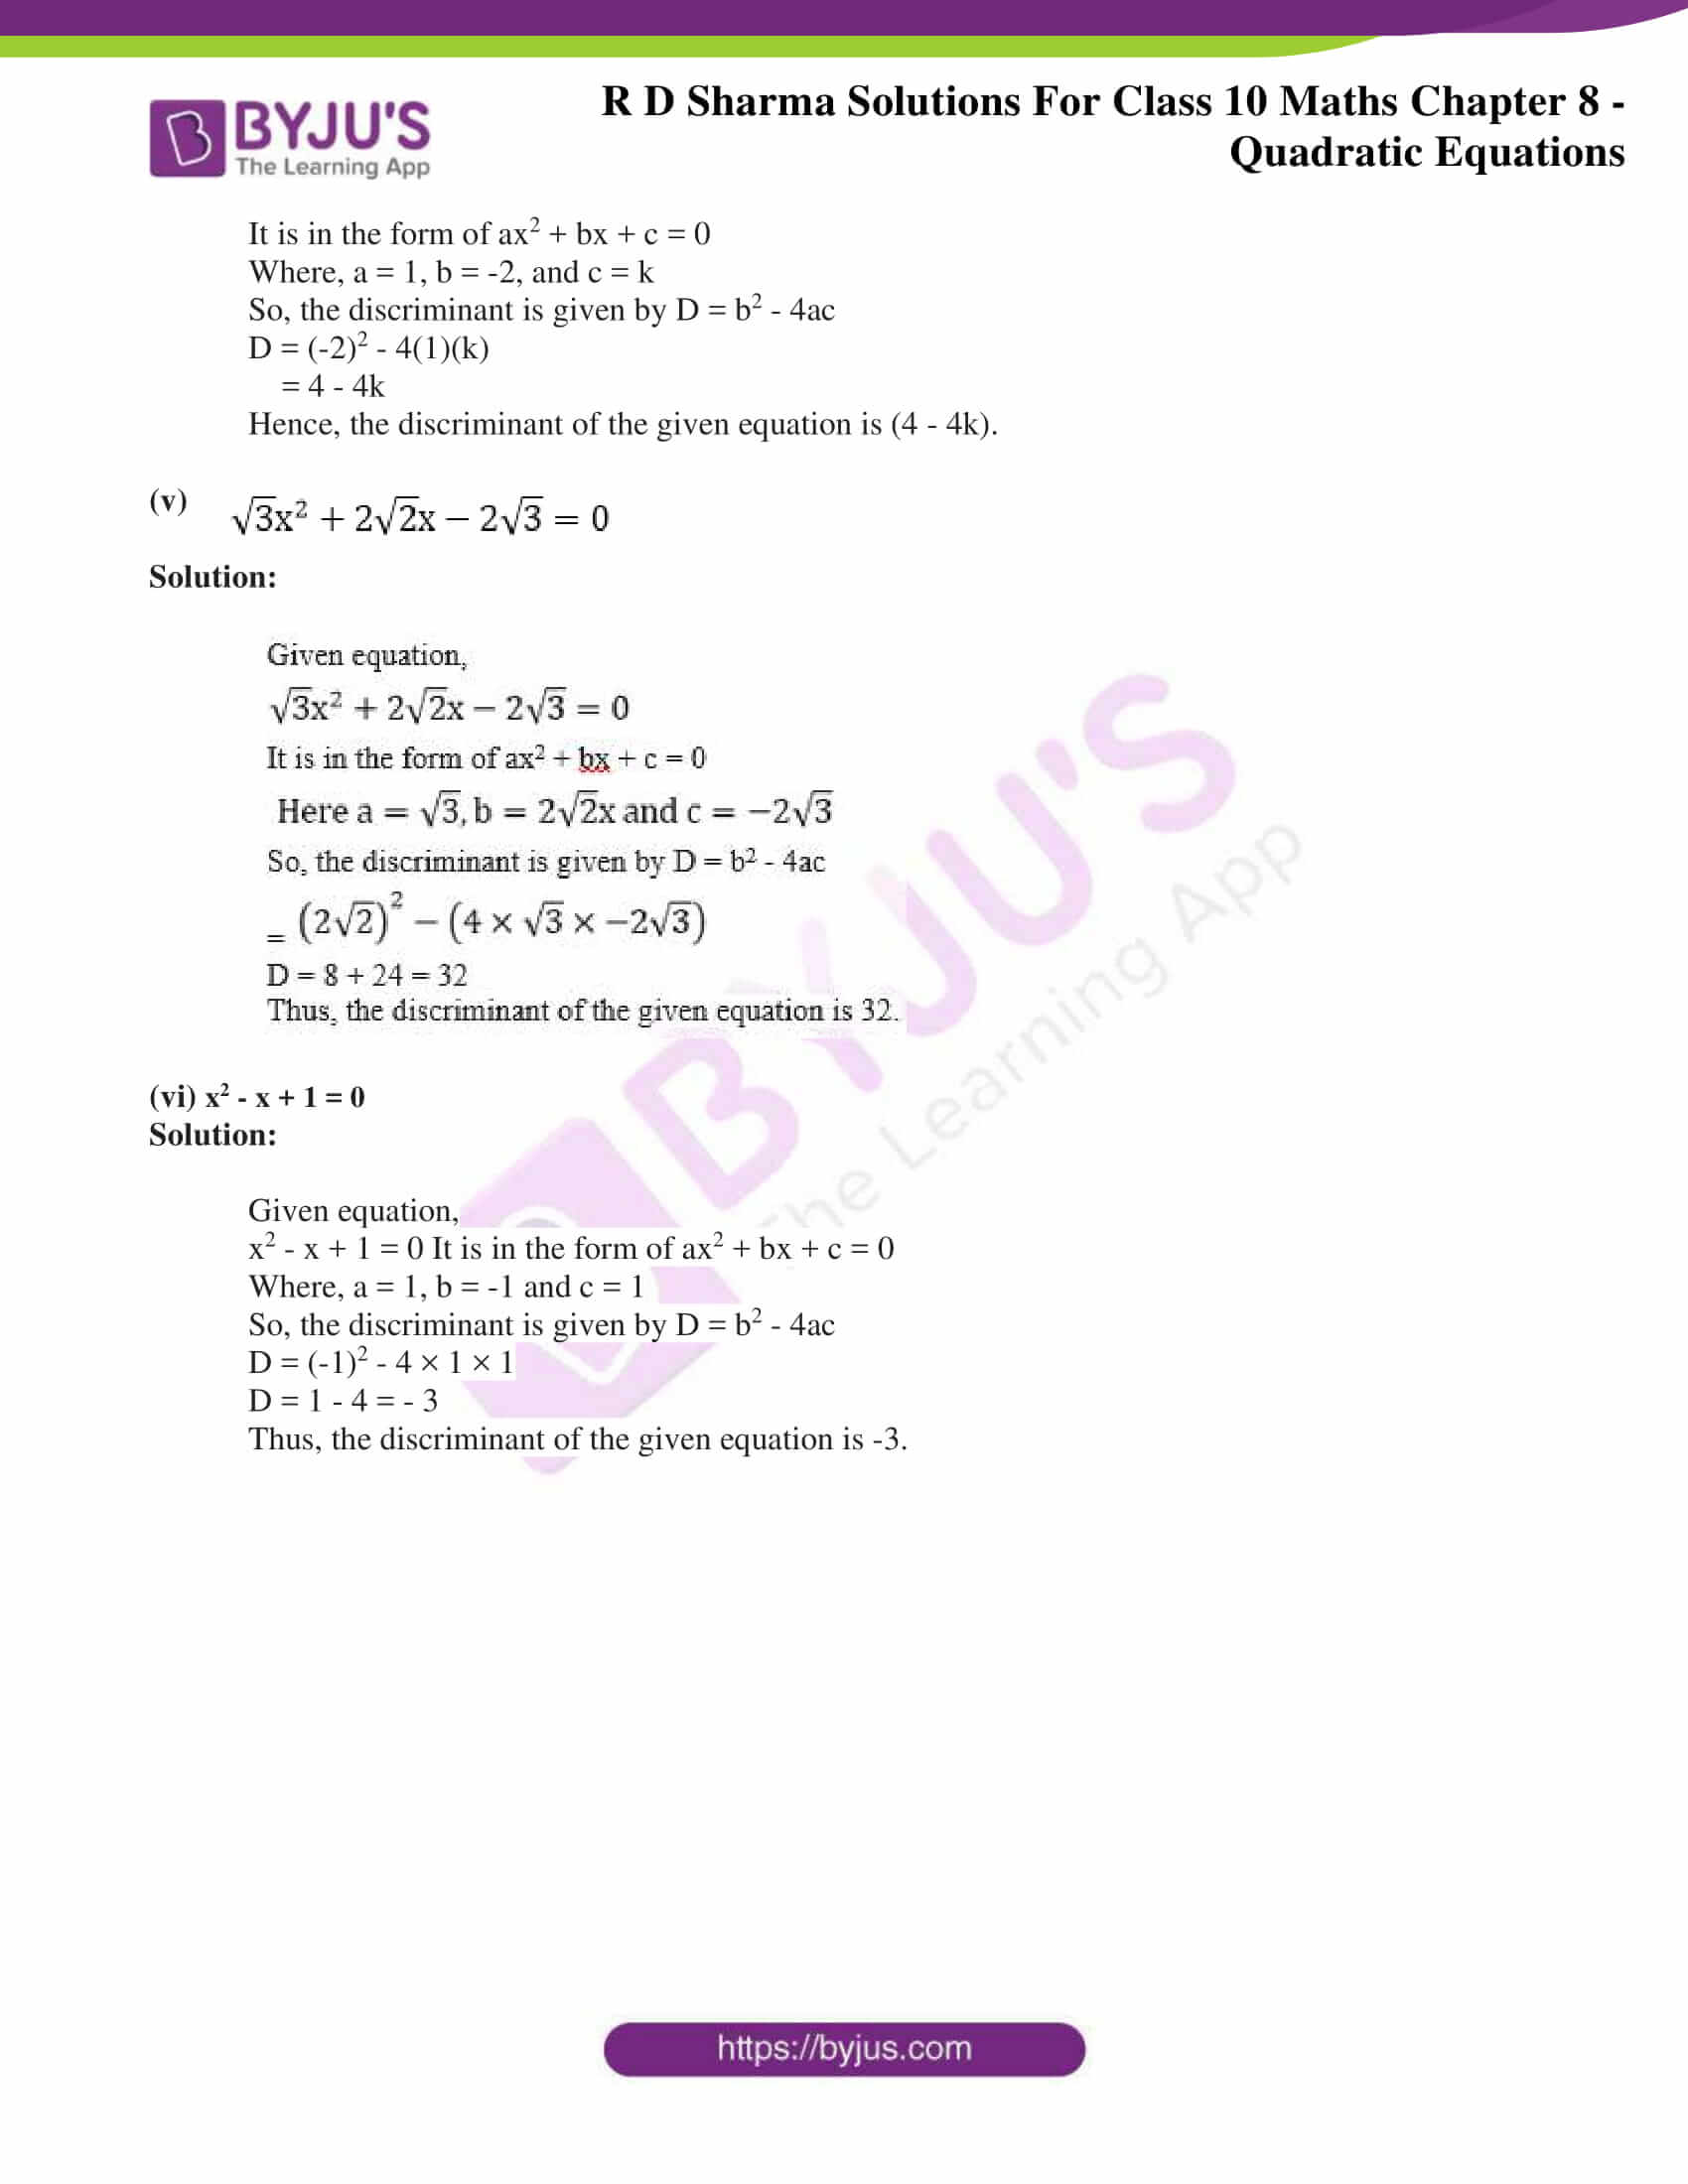 RD Sharma Solutions for Class 10 Chapter 8 Quadratic Equations Exercise 8.5 30